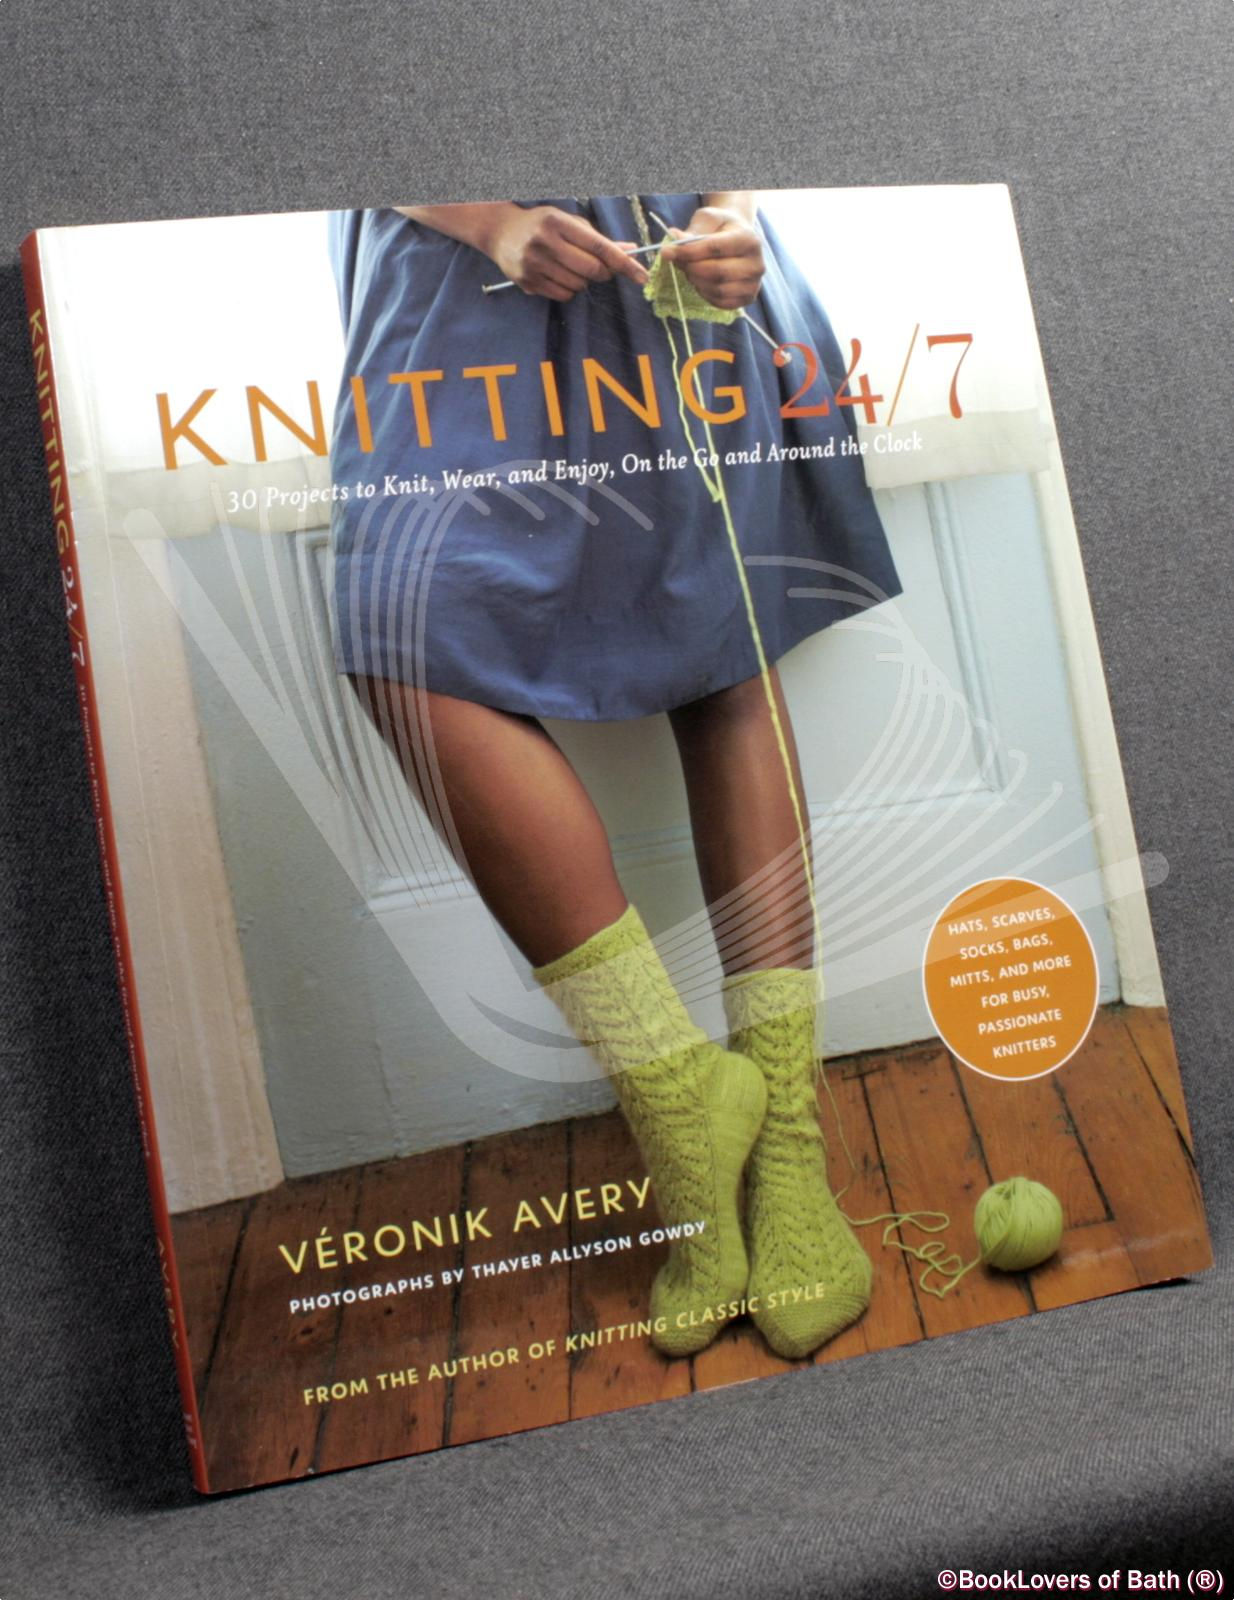 Knitting 24/7: 30 Projects to Knit, Wear and Enjoy, on the Go and Around the Clock - Veronik Avery